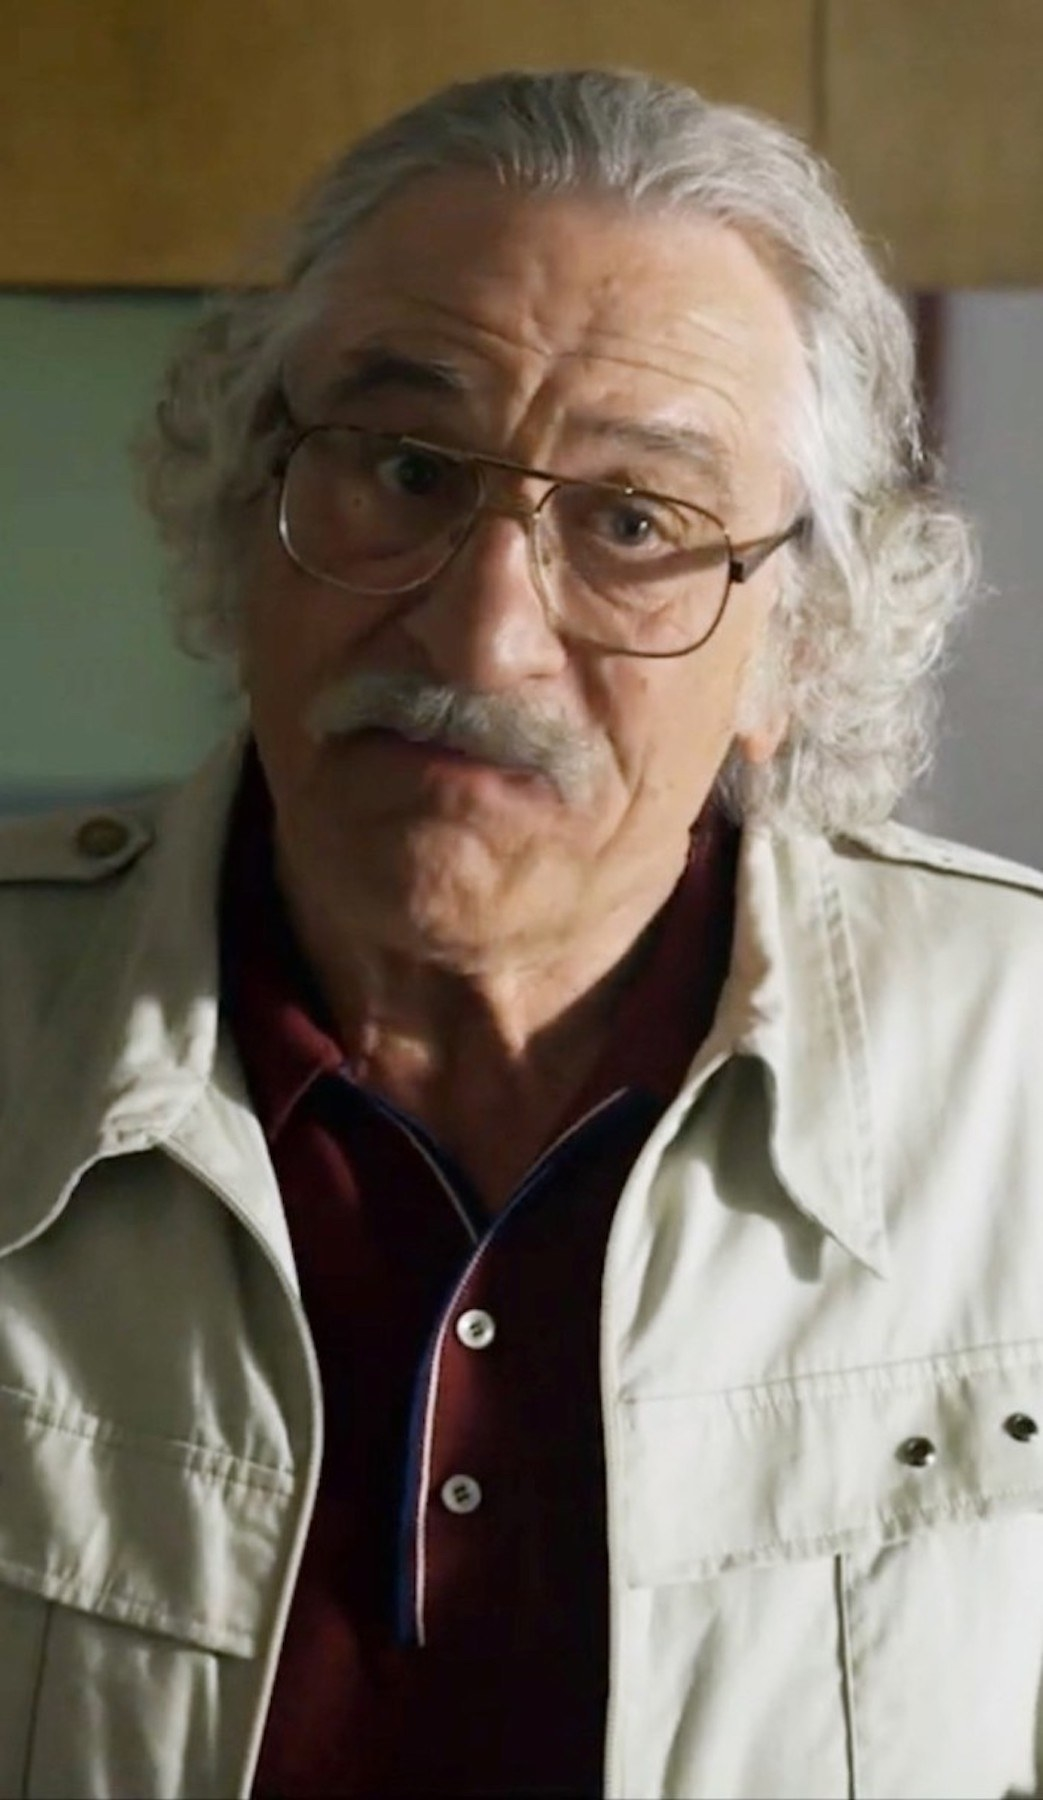 Robert De Niro with long grey hair, a grey beard, and over-sized glasses